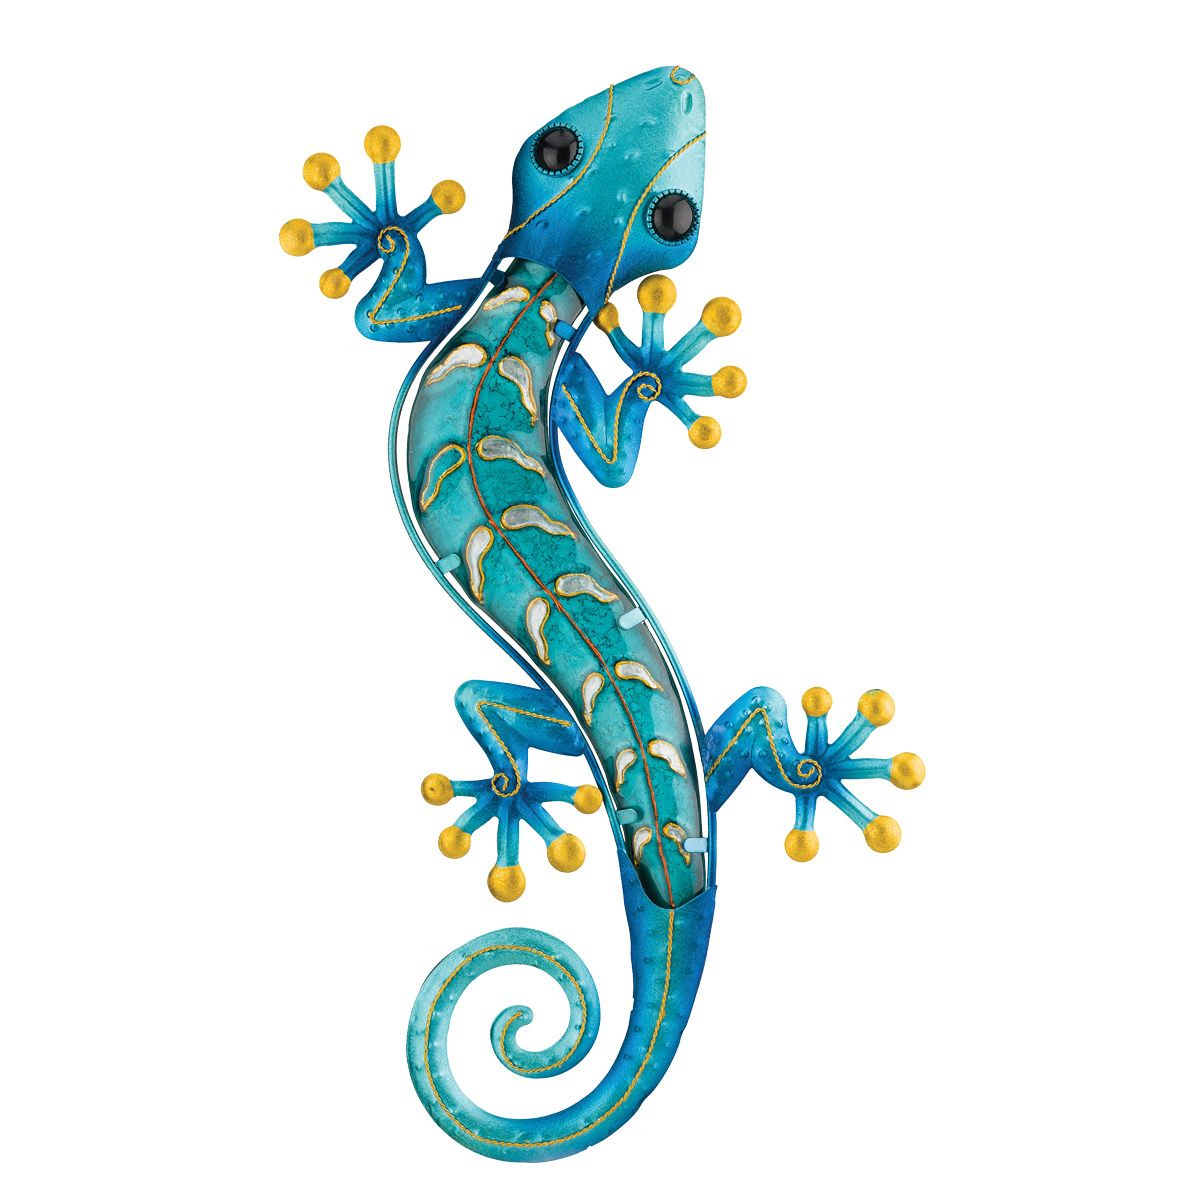 Gecko Wall Decor With Regard To Fashionable Rustic Metal Wall Art: Metal Gecko Wall Art – Blue (View 3 of 20)